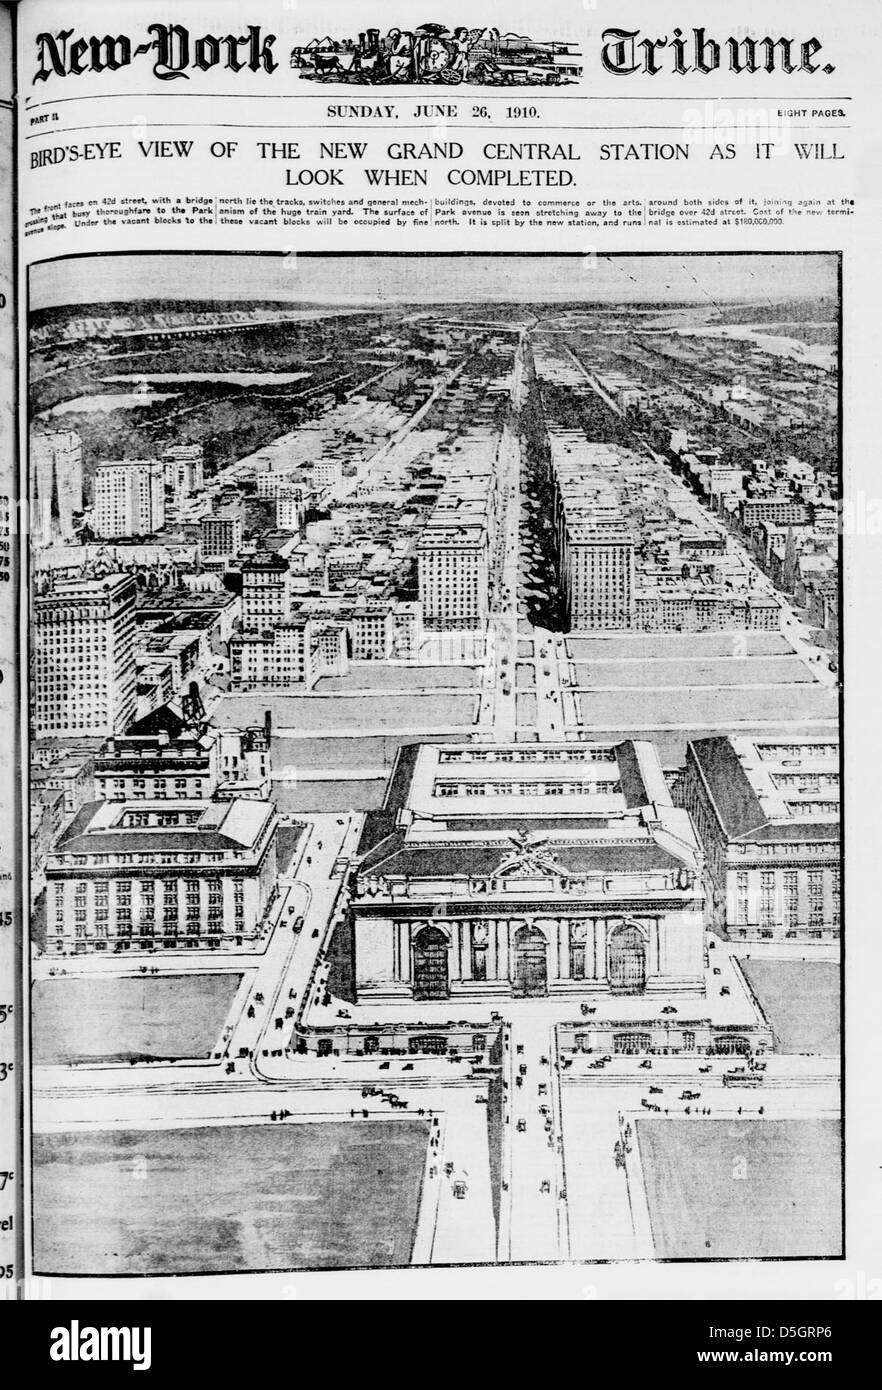 Bird's-eye view of the new Grand Central Station as it will look when completed (LOC) - Stock Image